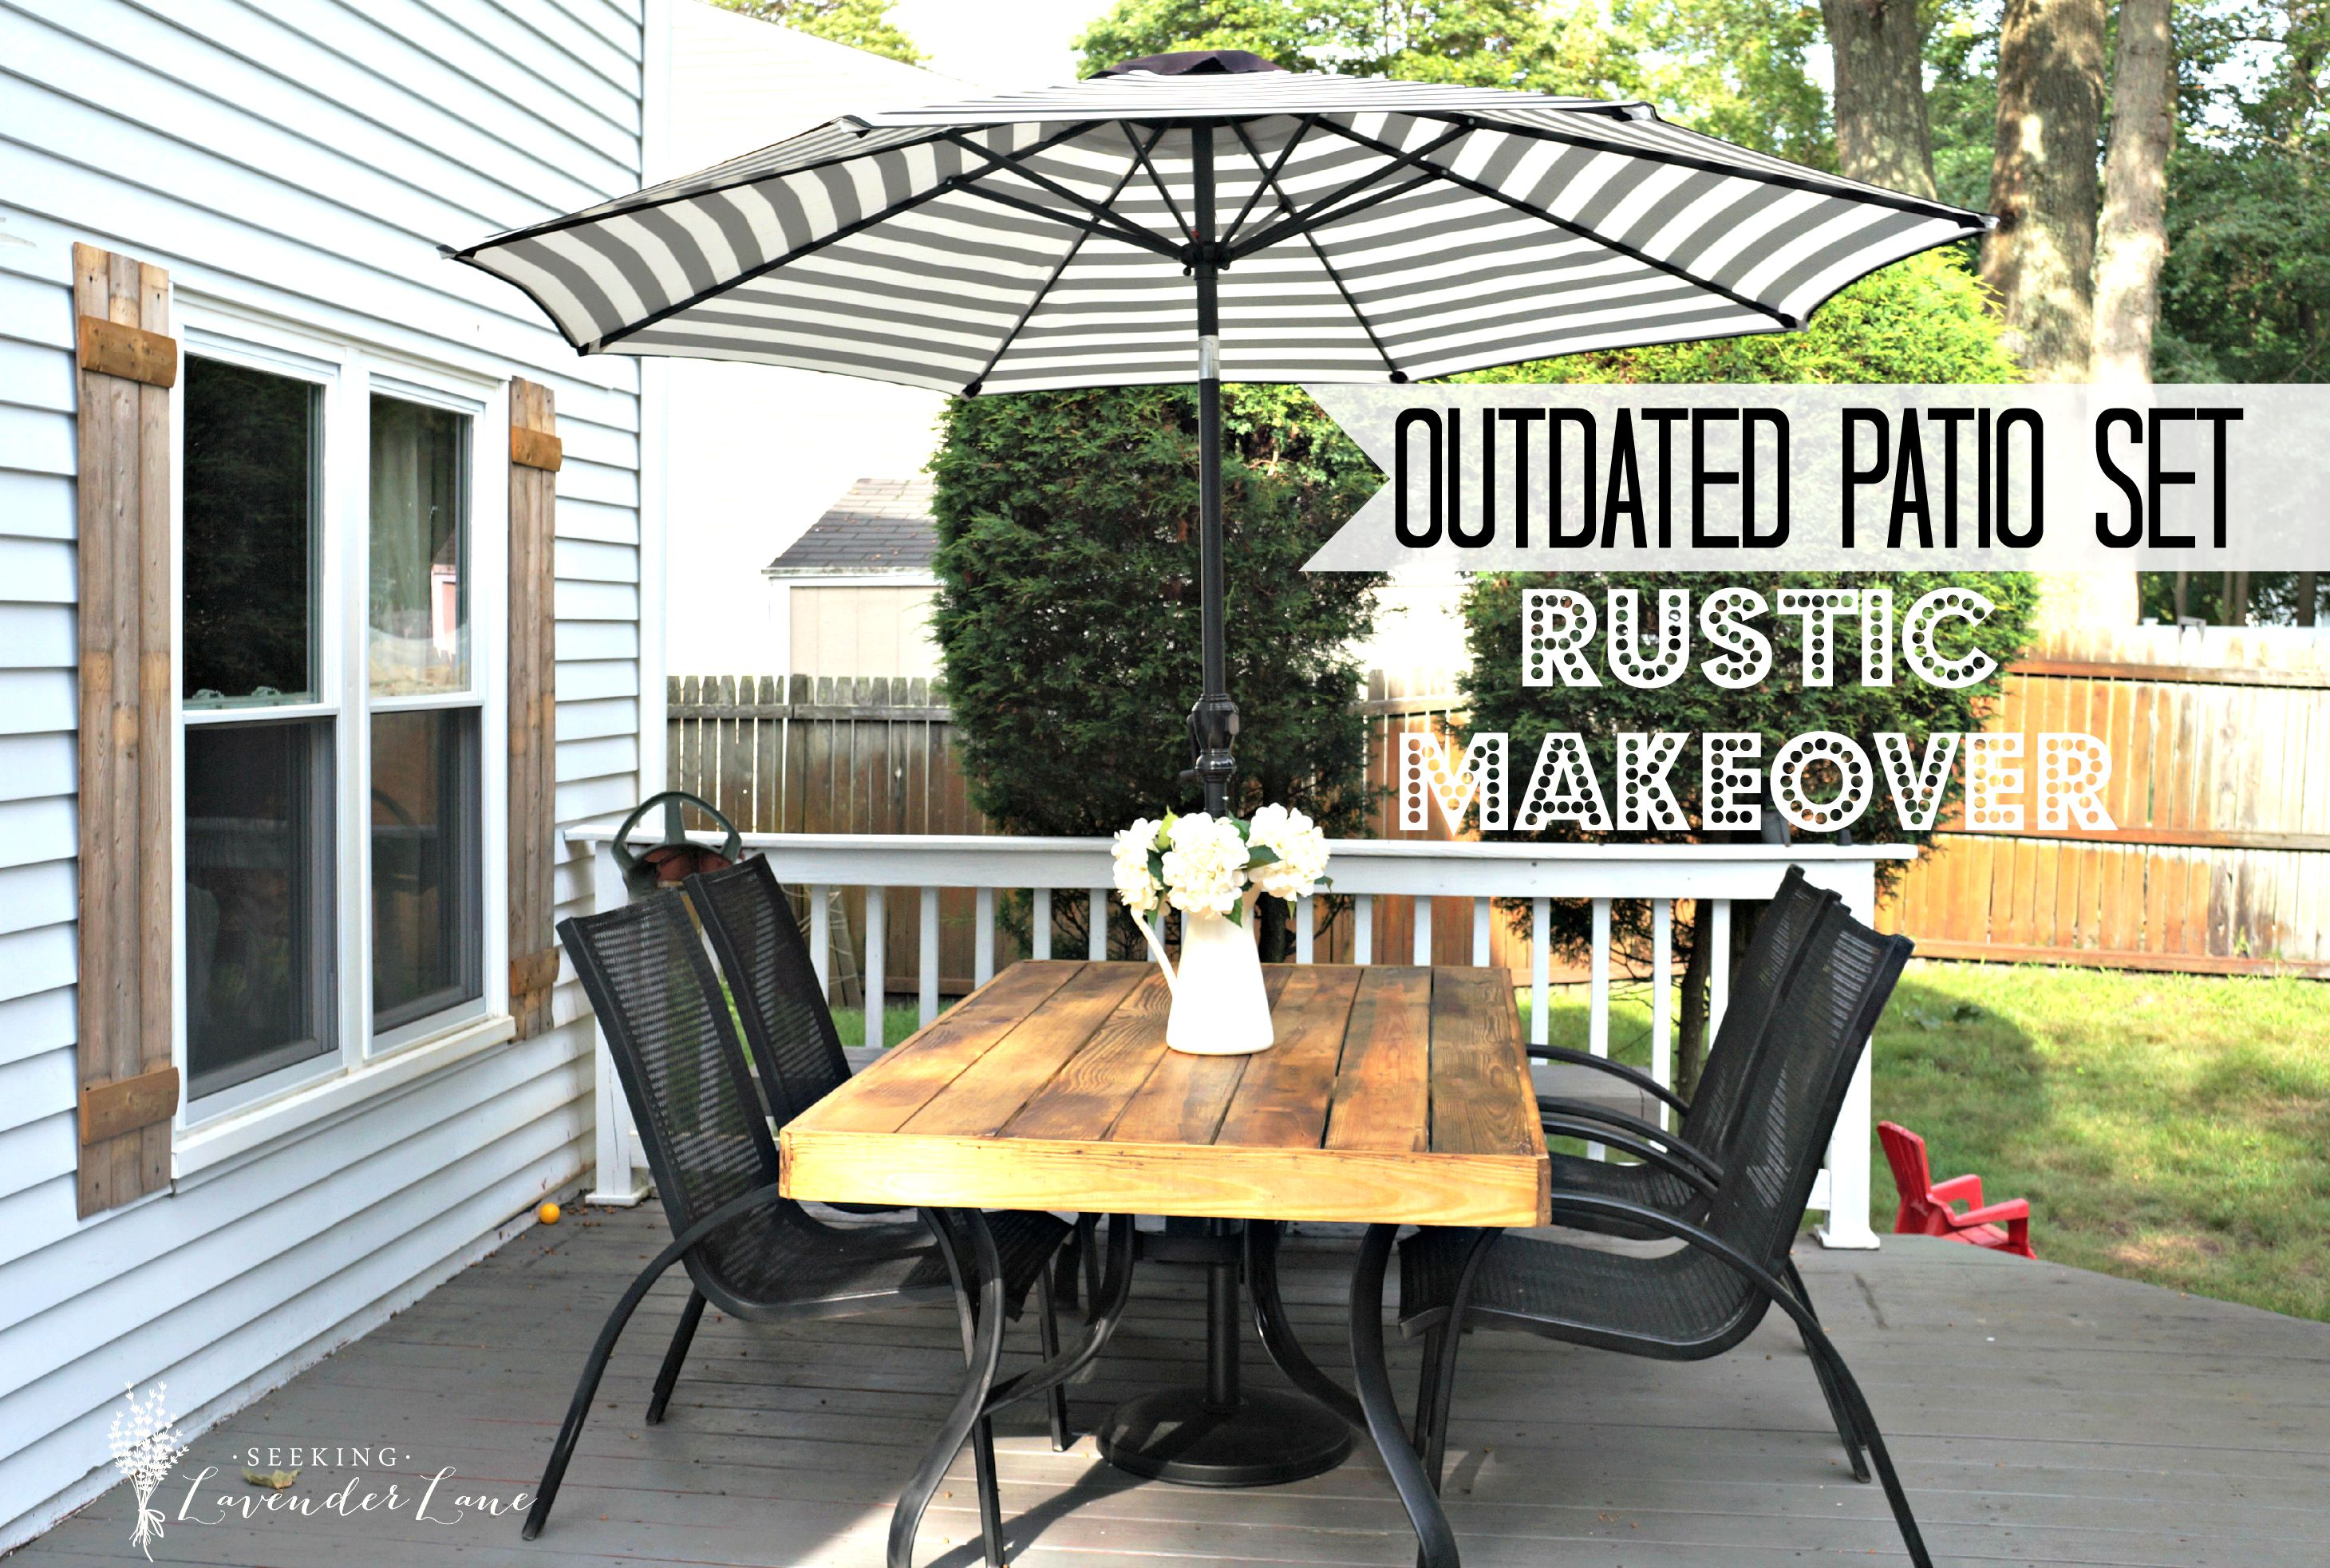 Home Decor How To Update An Outdated Outdoor Furniture Create A French Rustic Cafe Setting In The Backyard Using Old